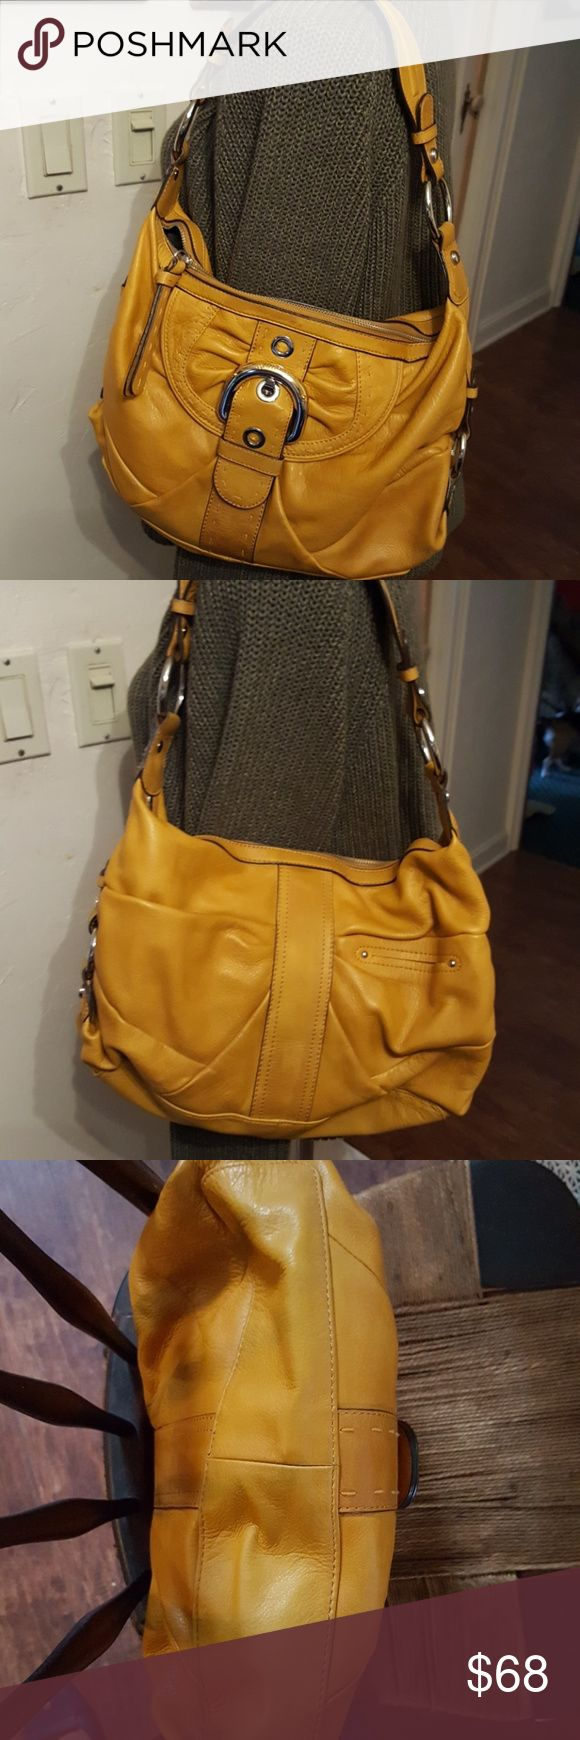 Fab b. Makowsky shoulder bag Fabulous bag with Gorgeous details. Shows normal wear. Beautiful leather. Great color to make your neutral colors pop. Open to reasonable offers. b. makowsky Bags Shoulder Bags